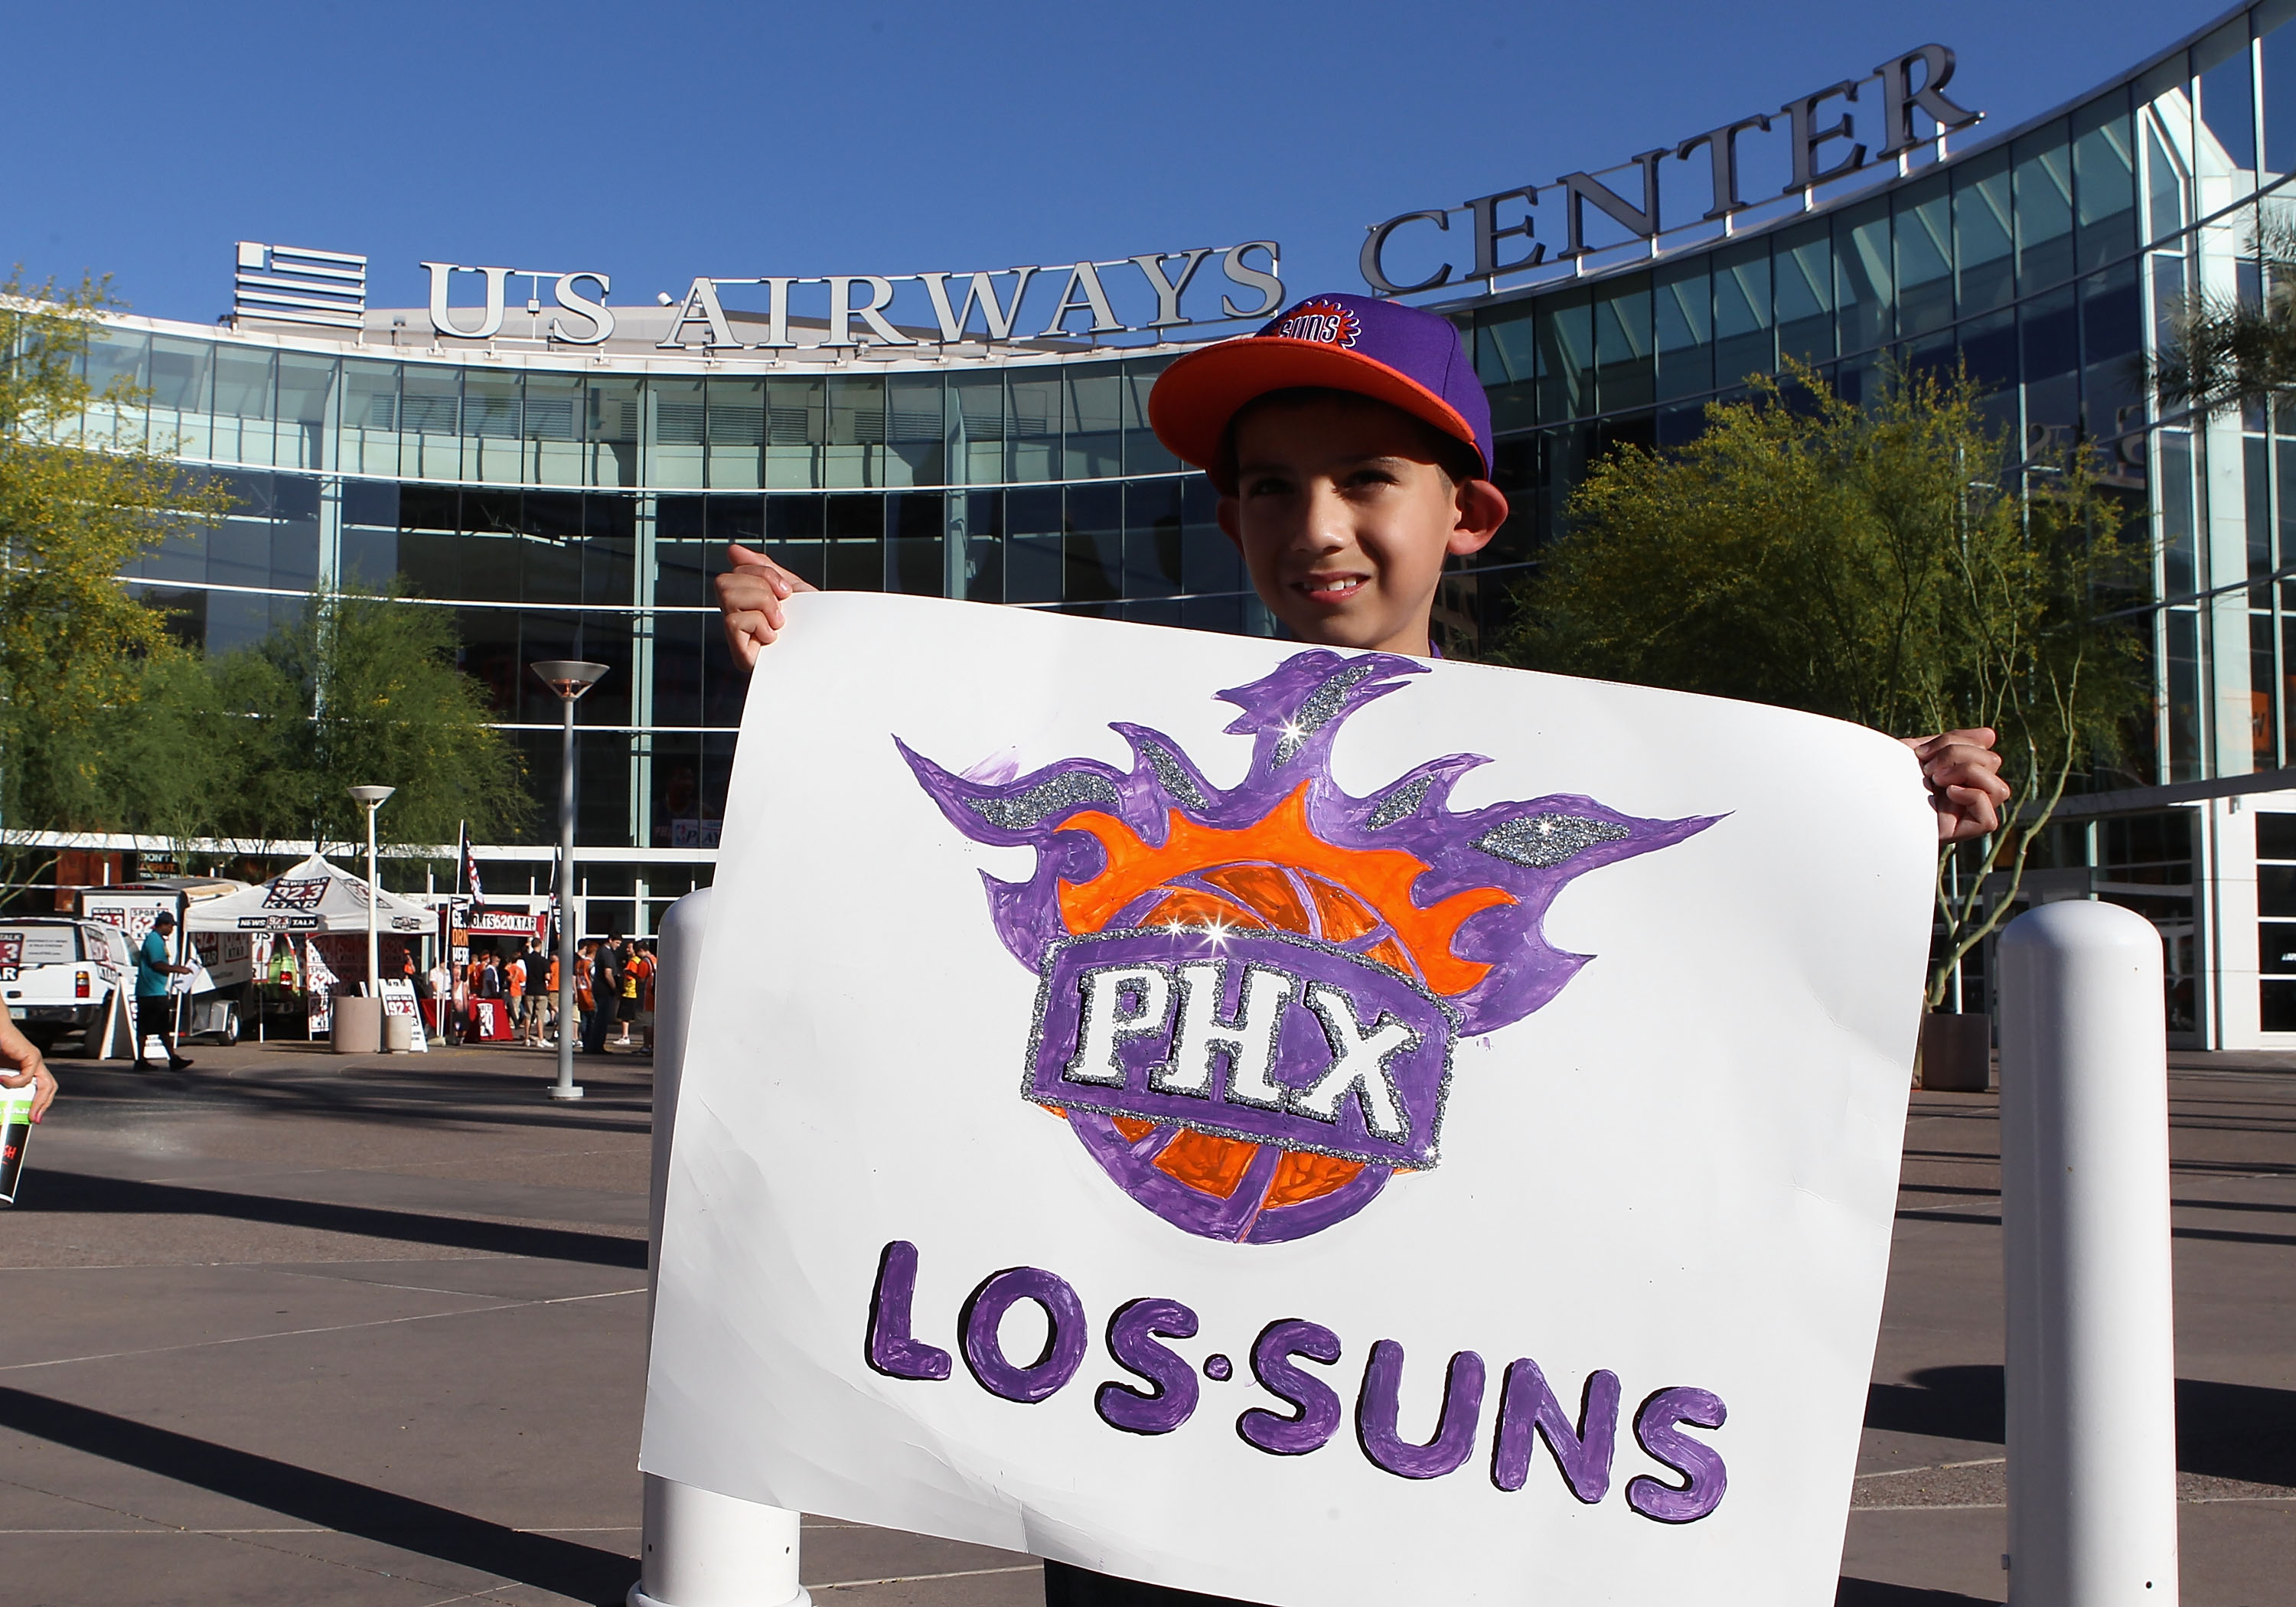 PHOENIX - MAY 05:  Phoenix Suns fan Isiah Quinonz poses with a 'Los Suns' sign before Game Two of the Western Conference Semifinals of the 2010 NBA Playoffs against the San Antonio Spurs at US Airways Center on May 5, 2010 in Phoenix, Arizona. The team is